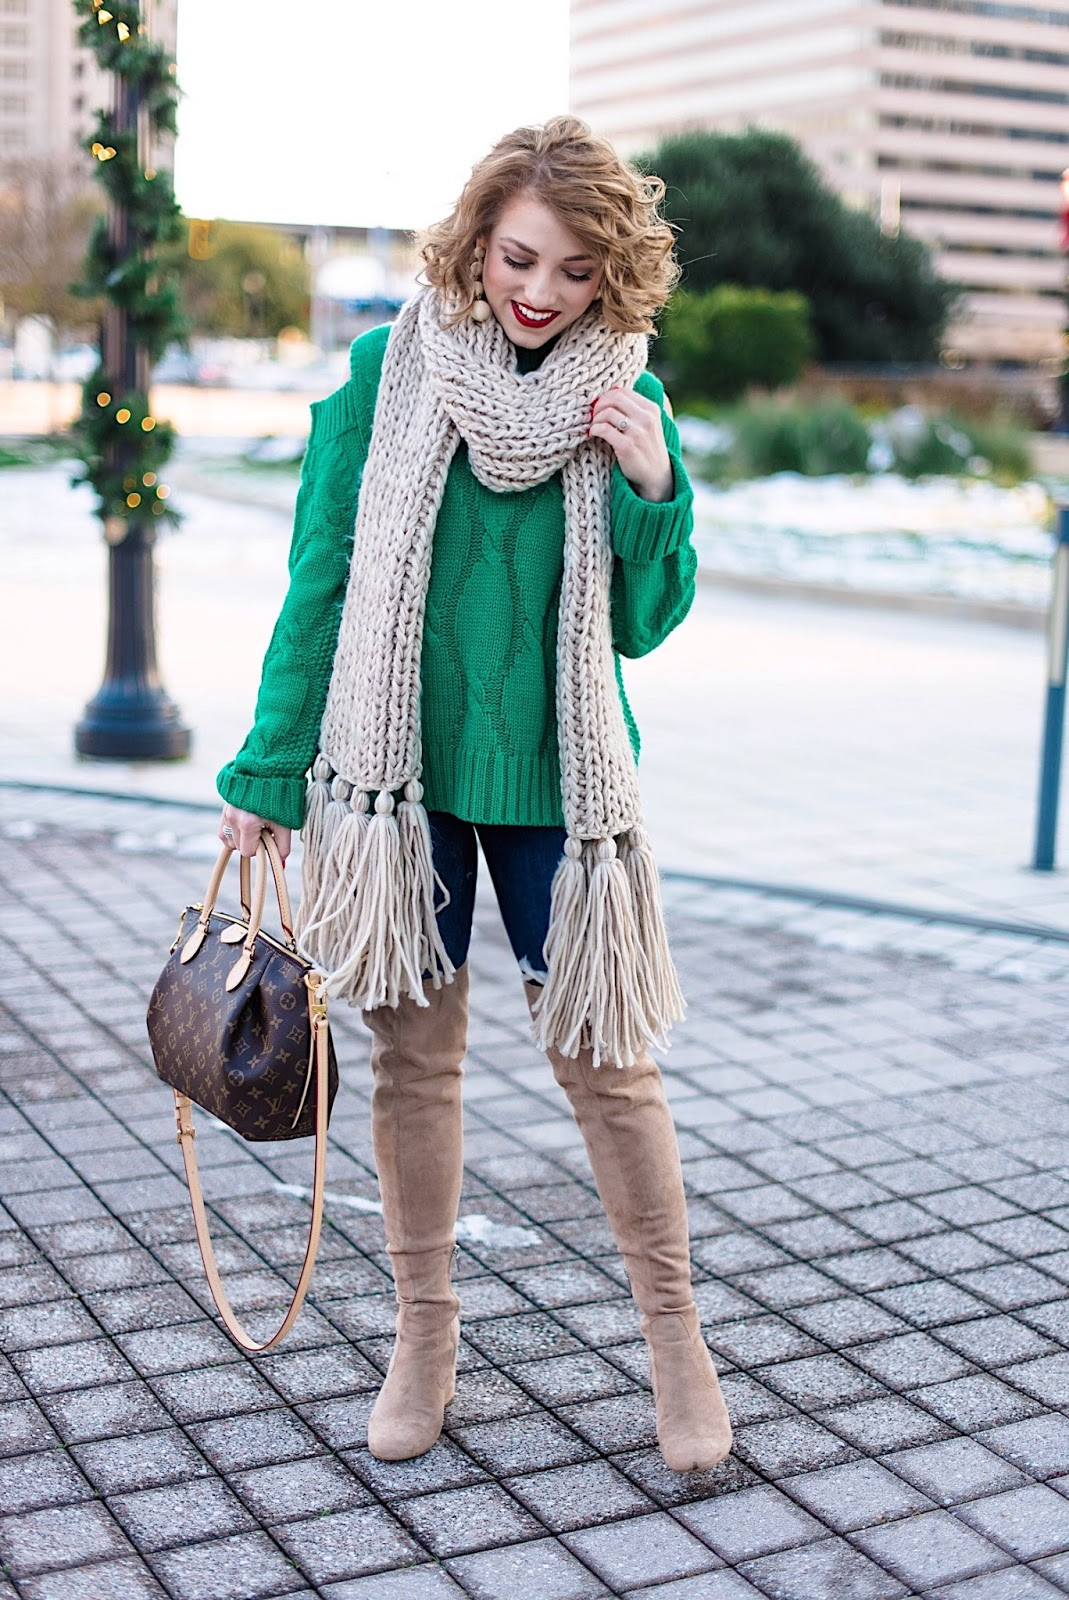 Winter Fashion: Cable Knit Sweater & OTK Boots - Something Delightful Blog